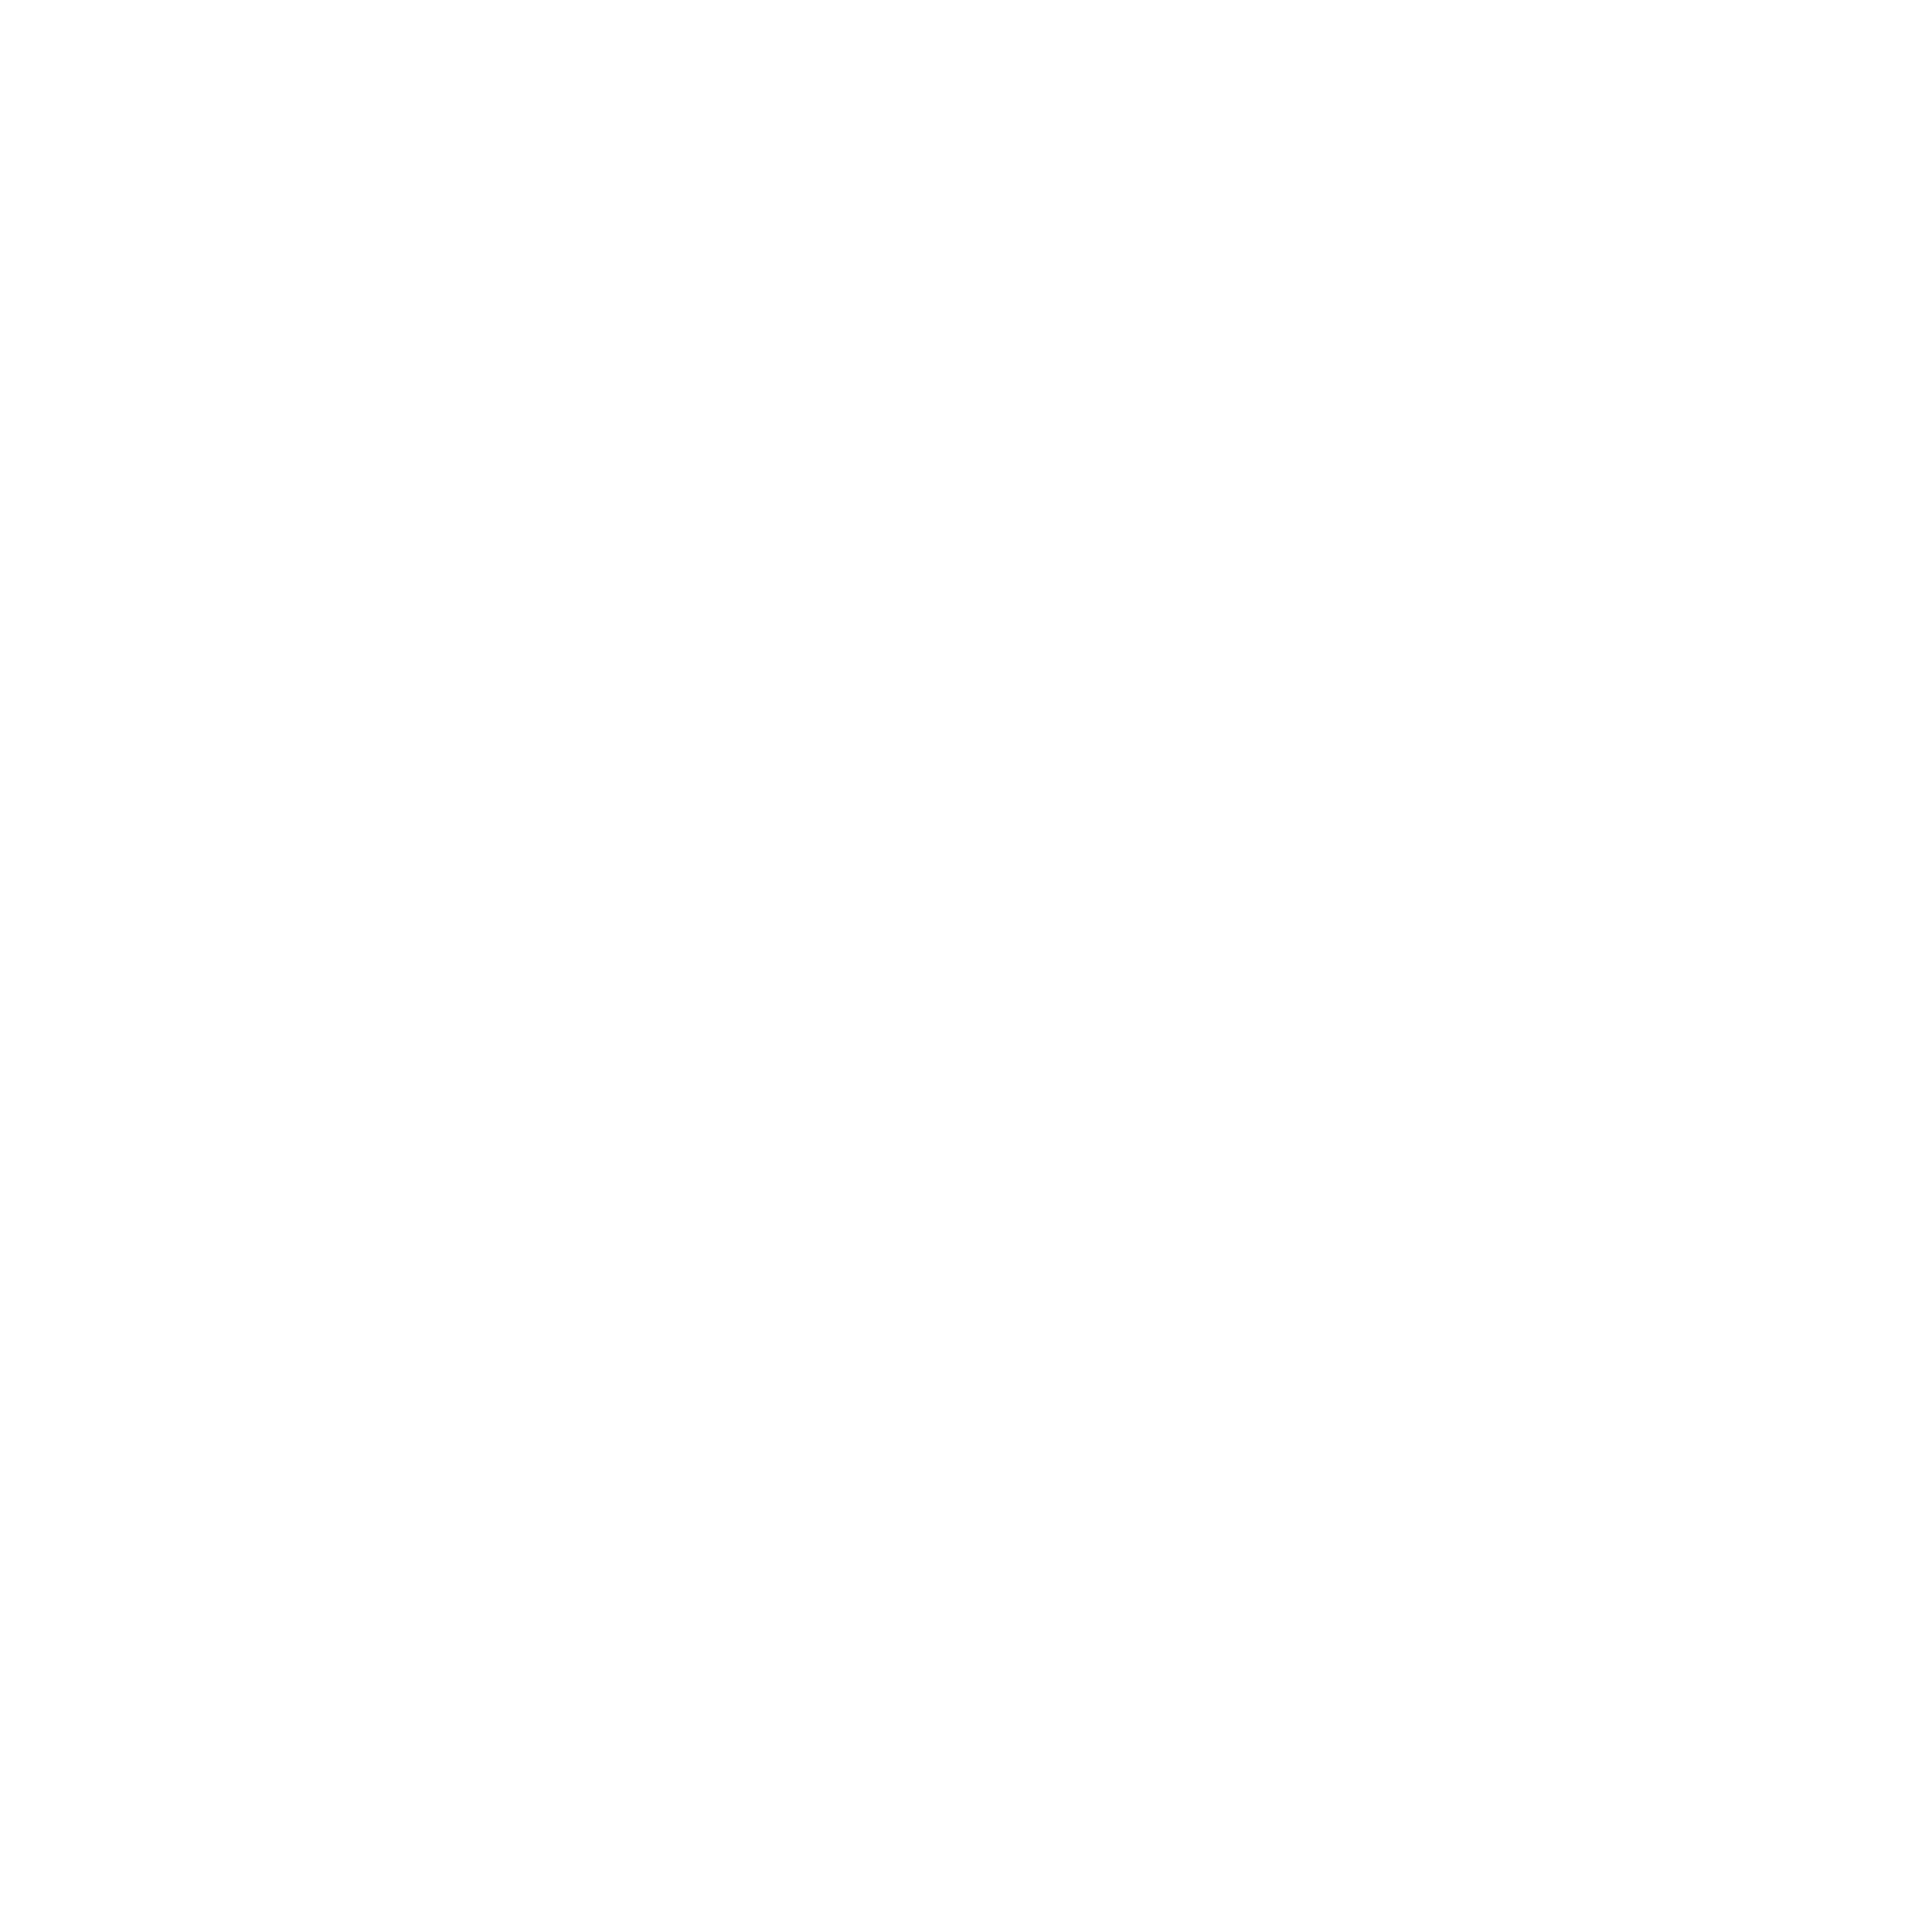 BMW-1.png